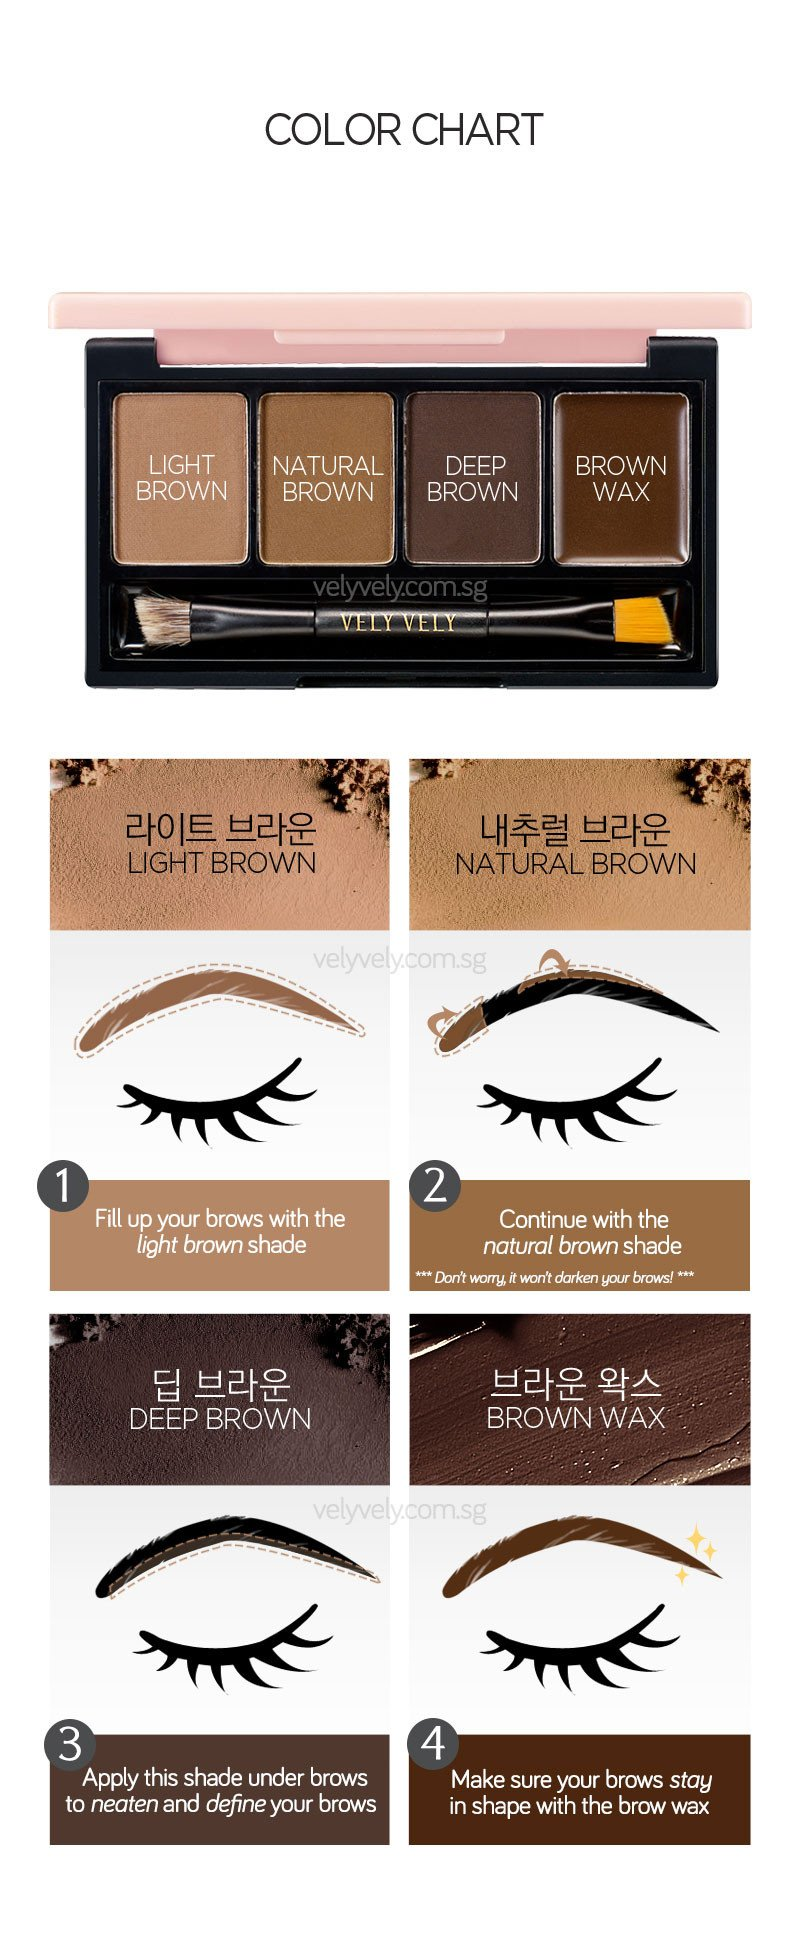 How to use Im Custom Brow Specialist to draw brows